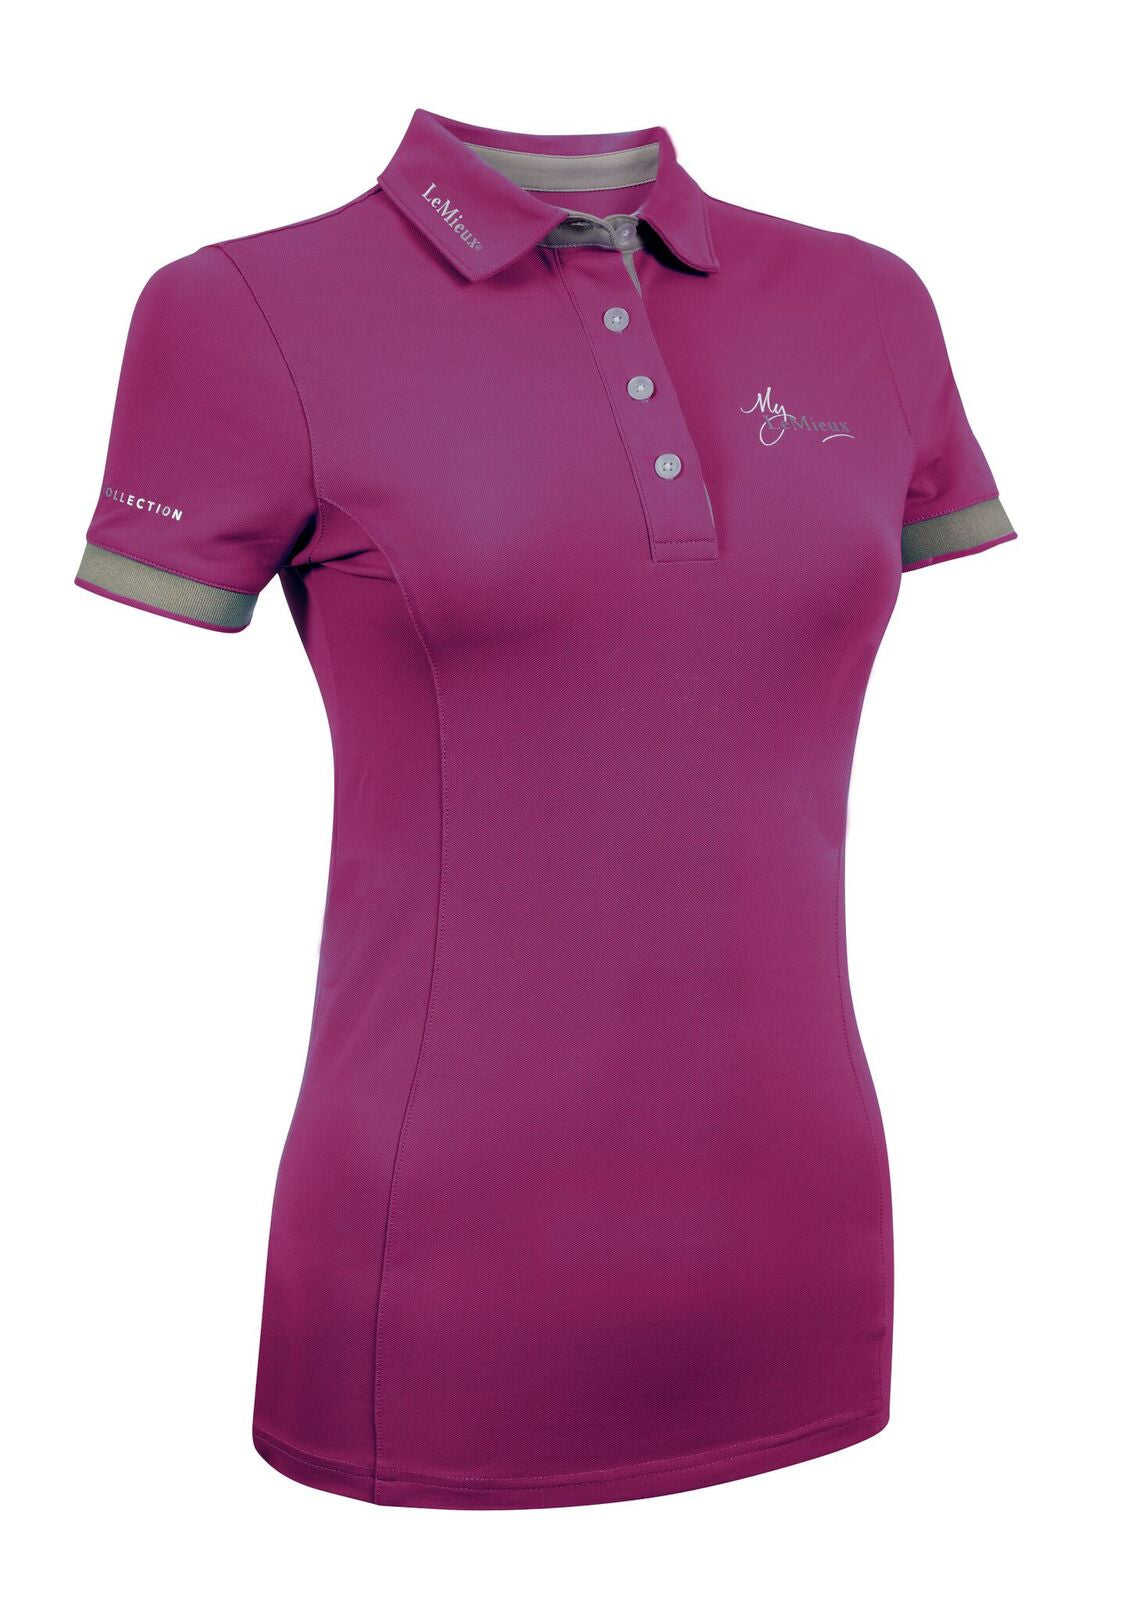 LeMieux Polo Shirt